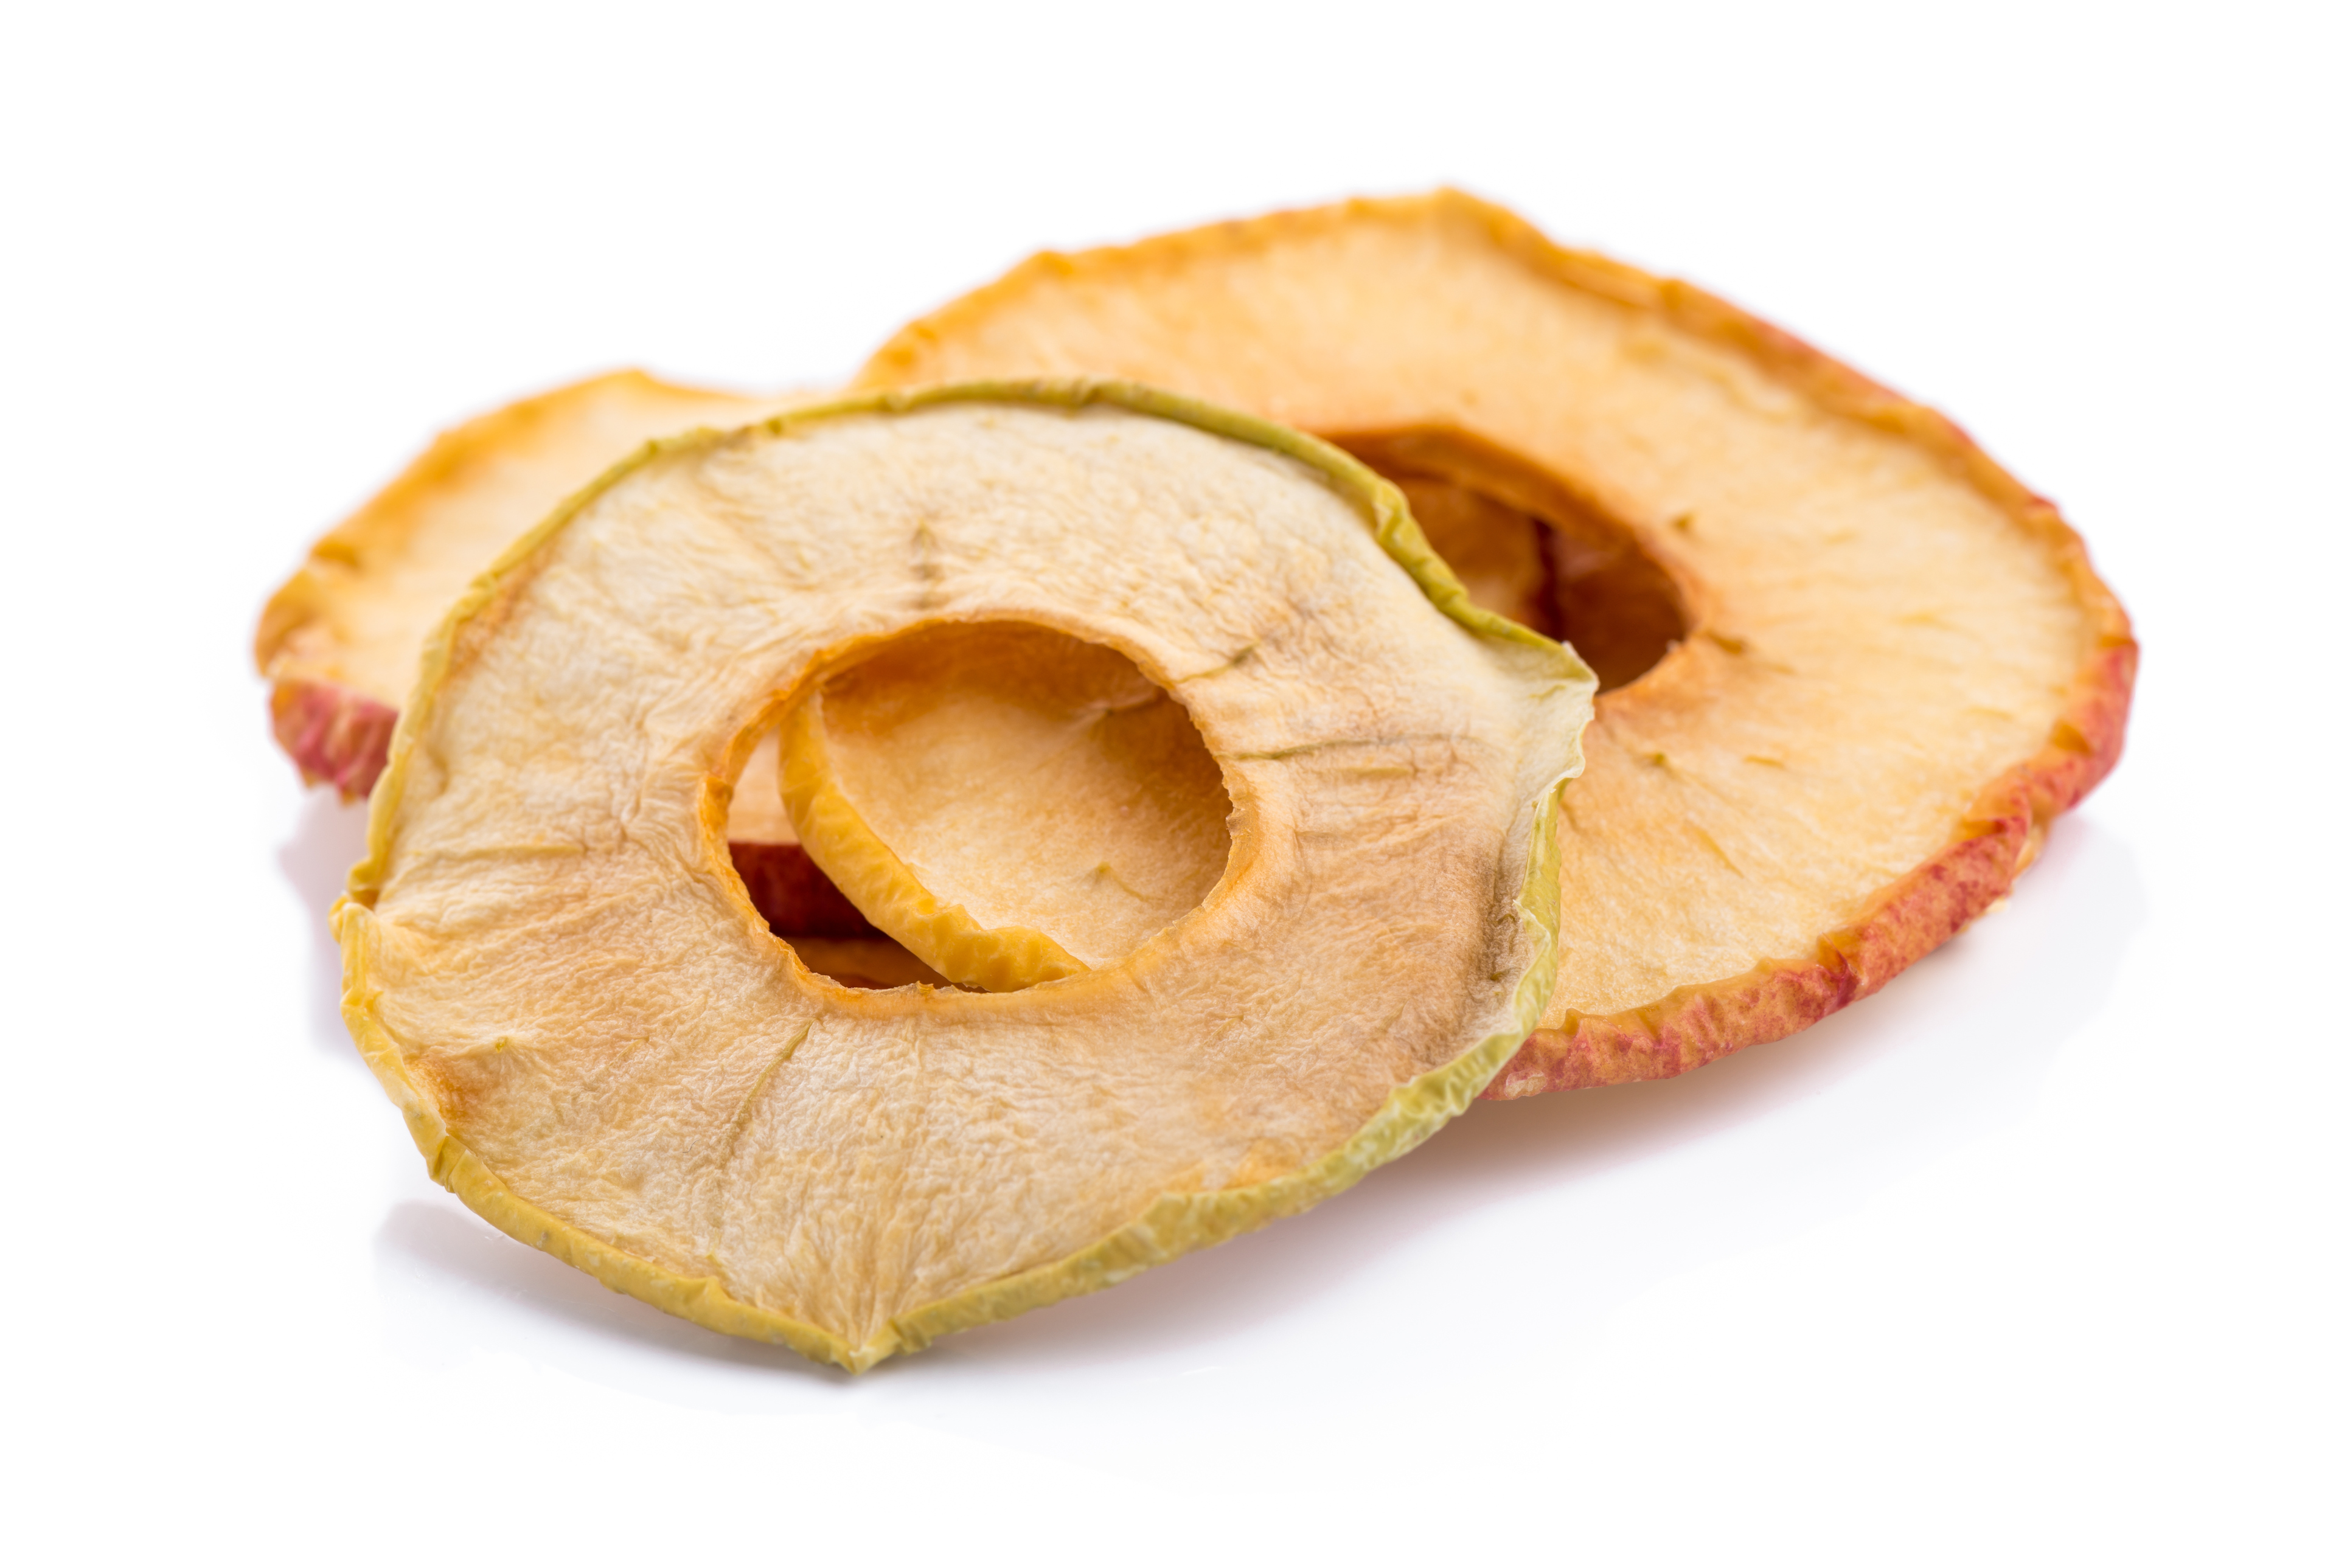 Dried apple makes a delicious snack (Thinkstock/PA)